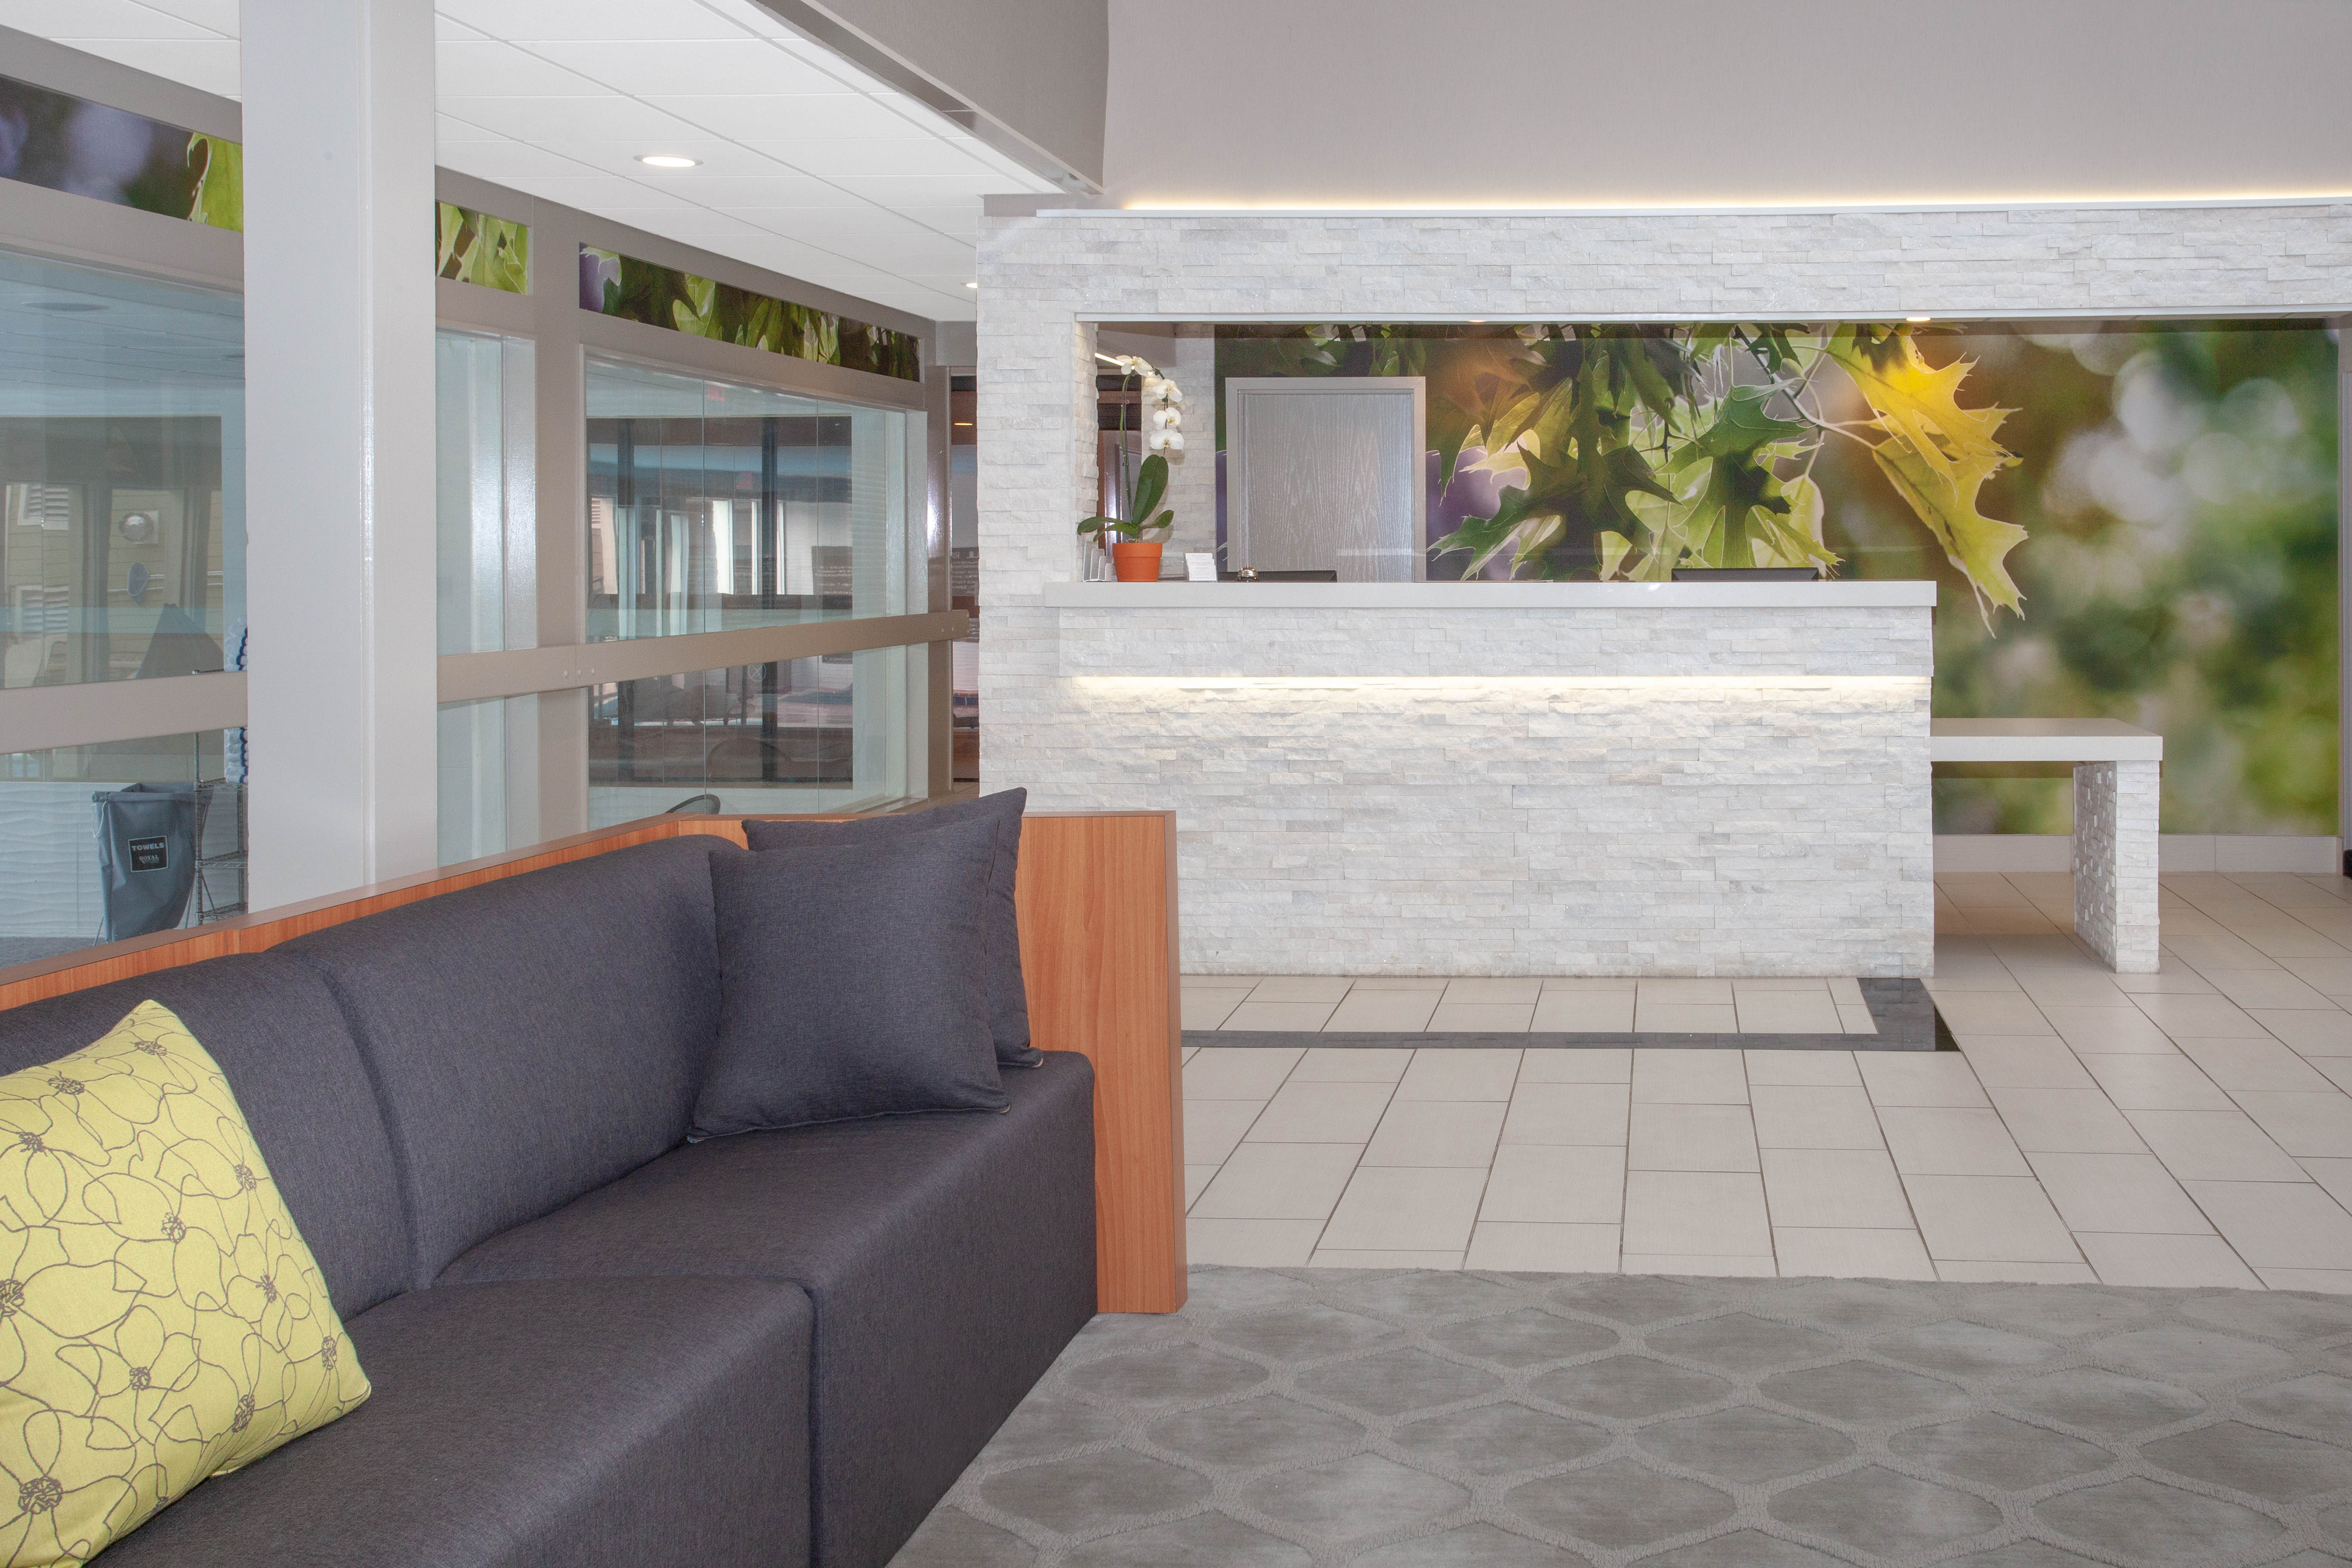 http://memorialcoliseum.com/images/Images/Where_to_Stay_Images/Wyndham_Garden/Lobby.jpg